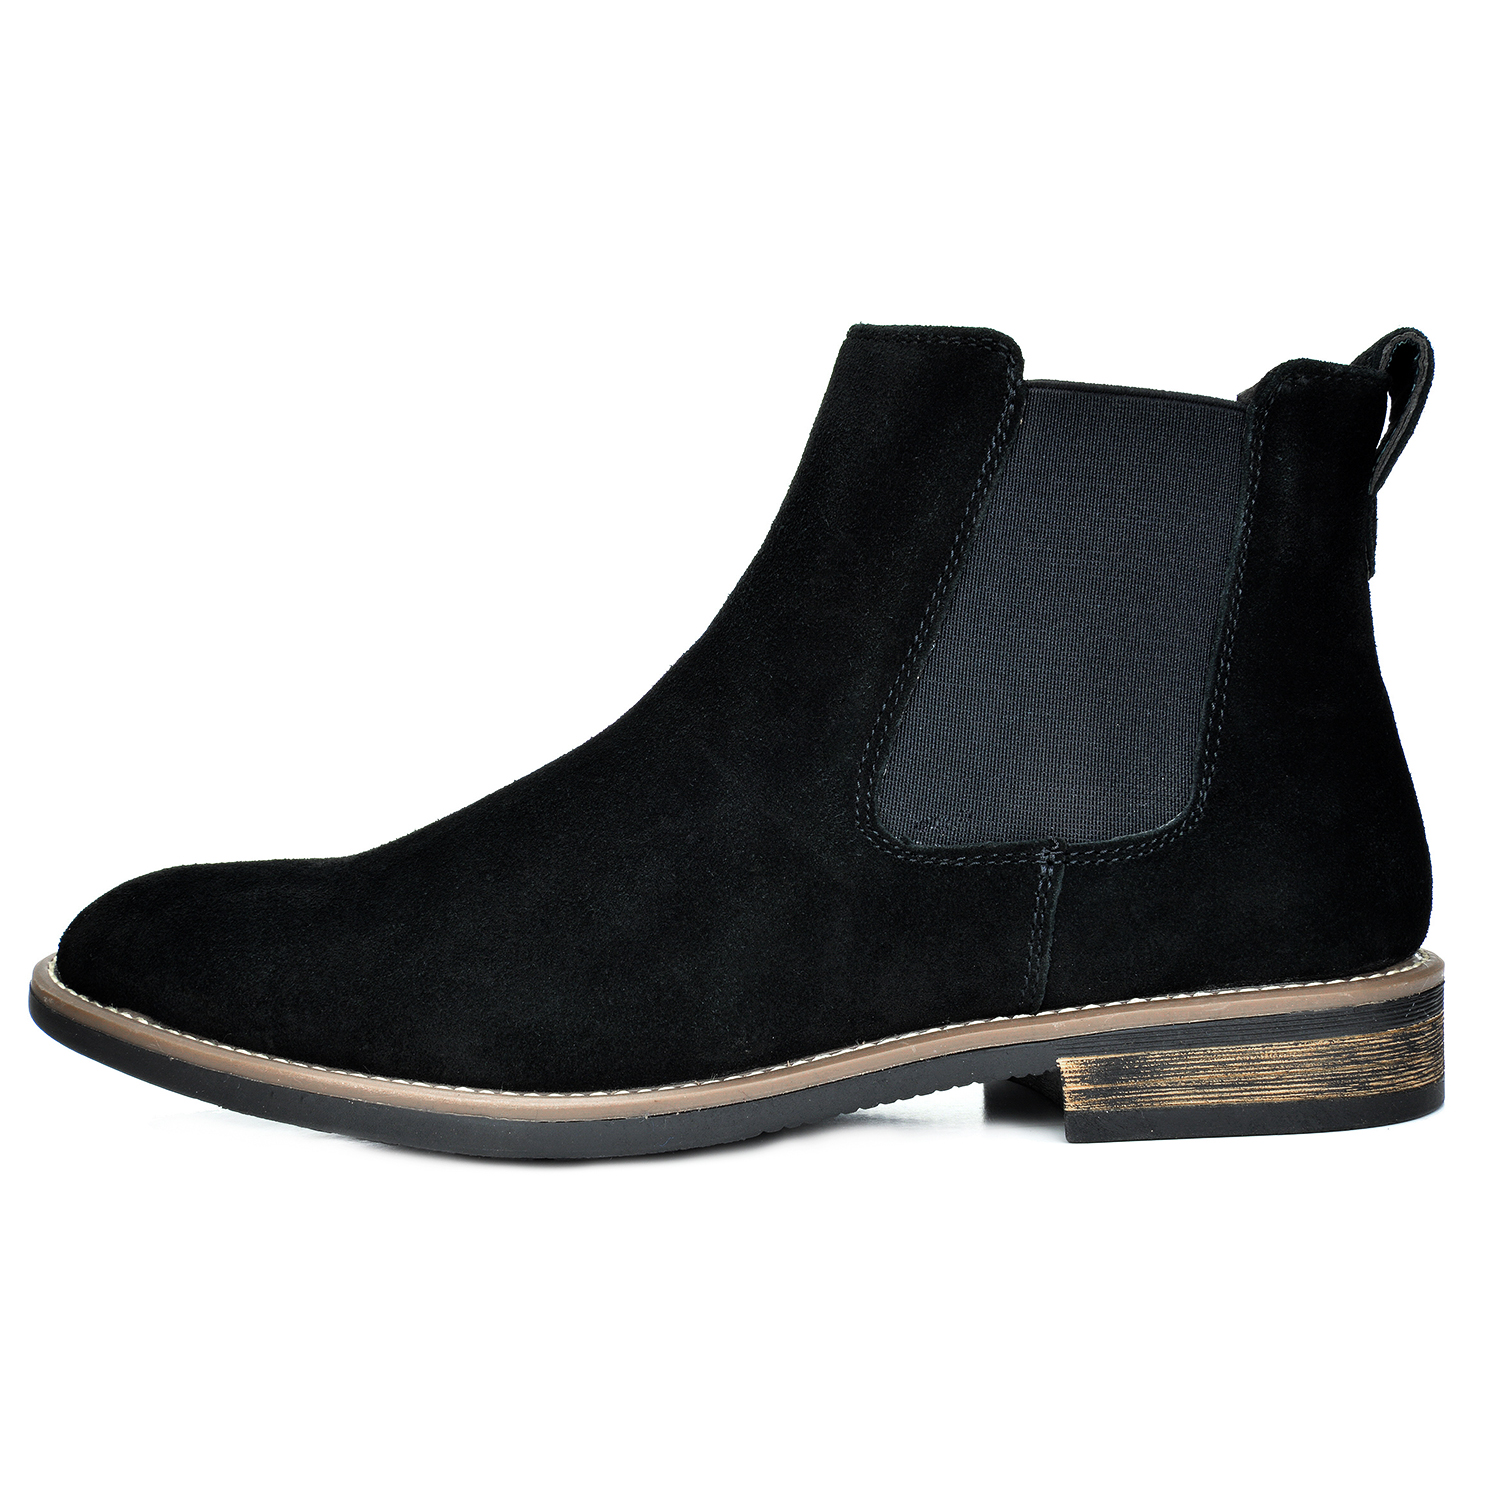 BRUNO-MARC-Men-URBAN-Suede-Leather-Chelsea-Chukka-Dress-Ankle-Boots-Casual-Shoes thumbnail 8